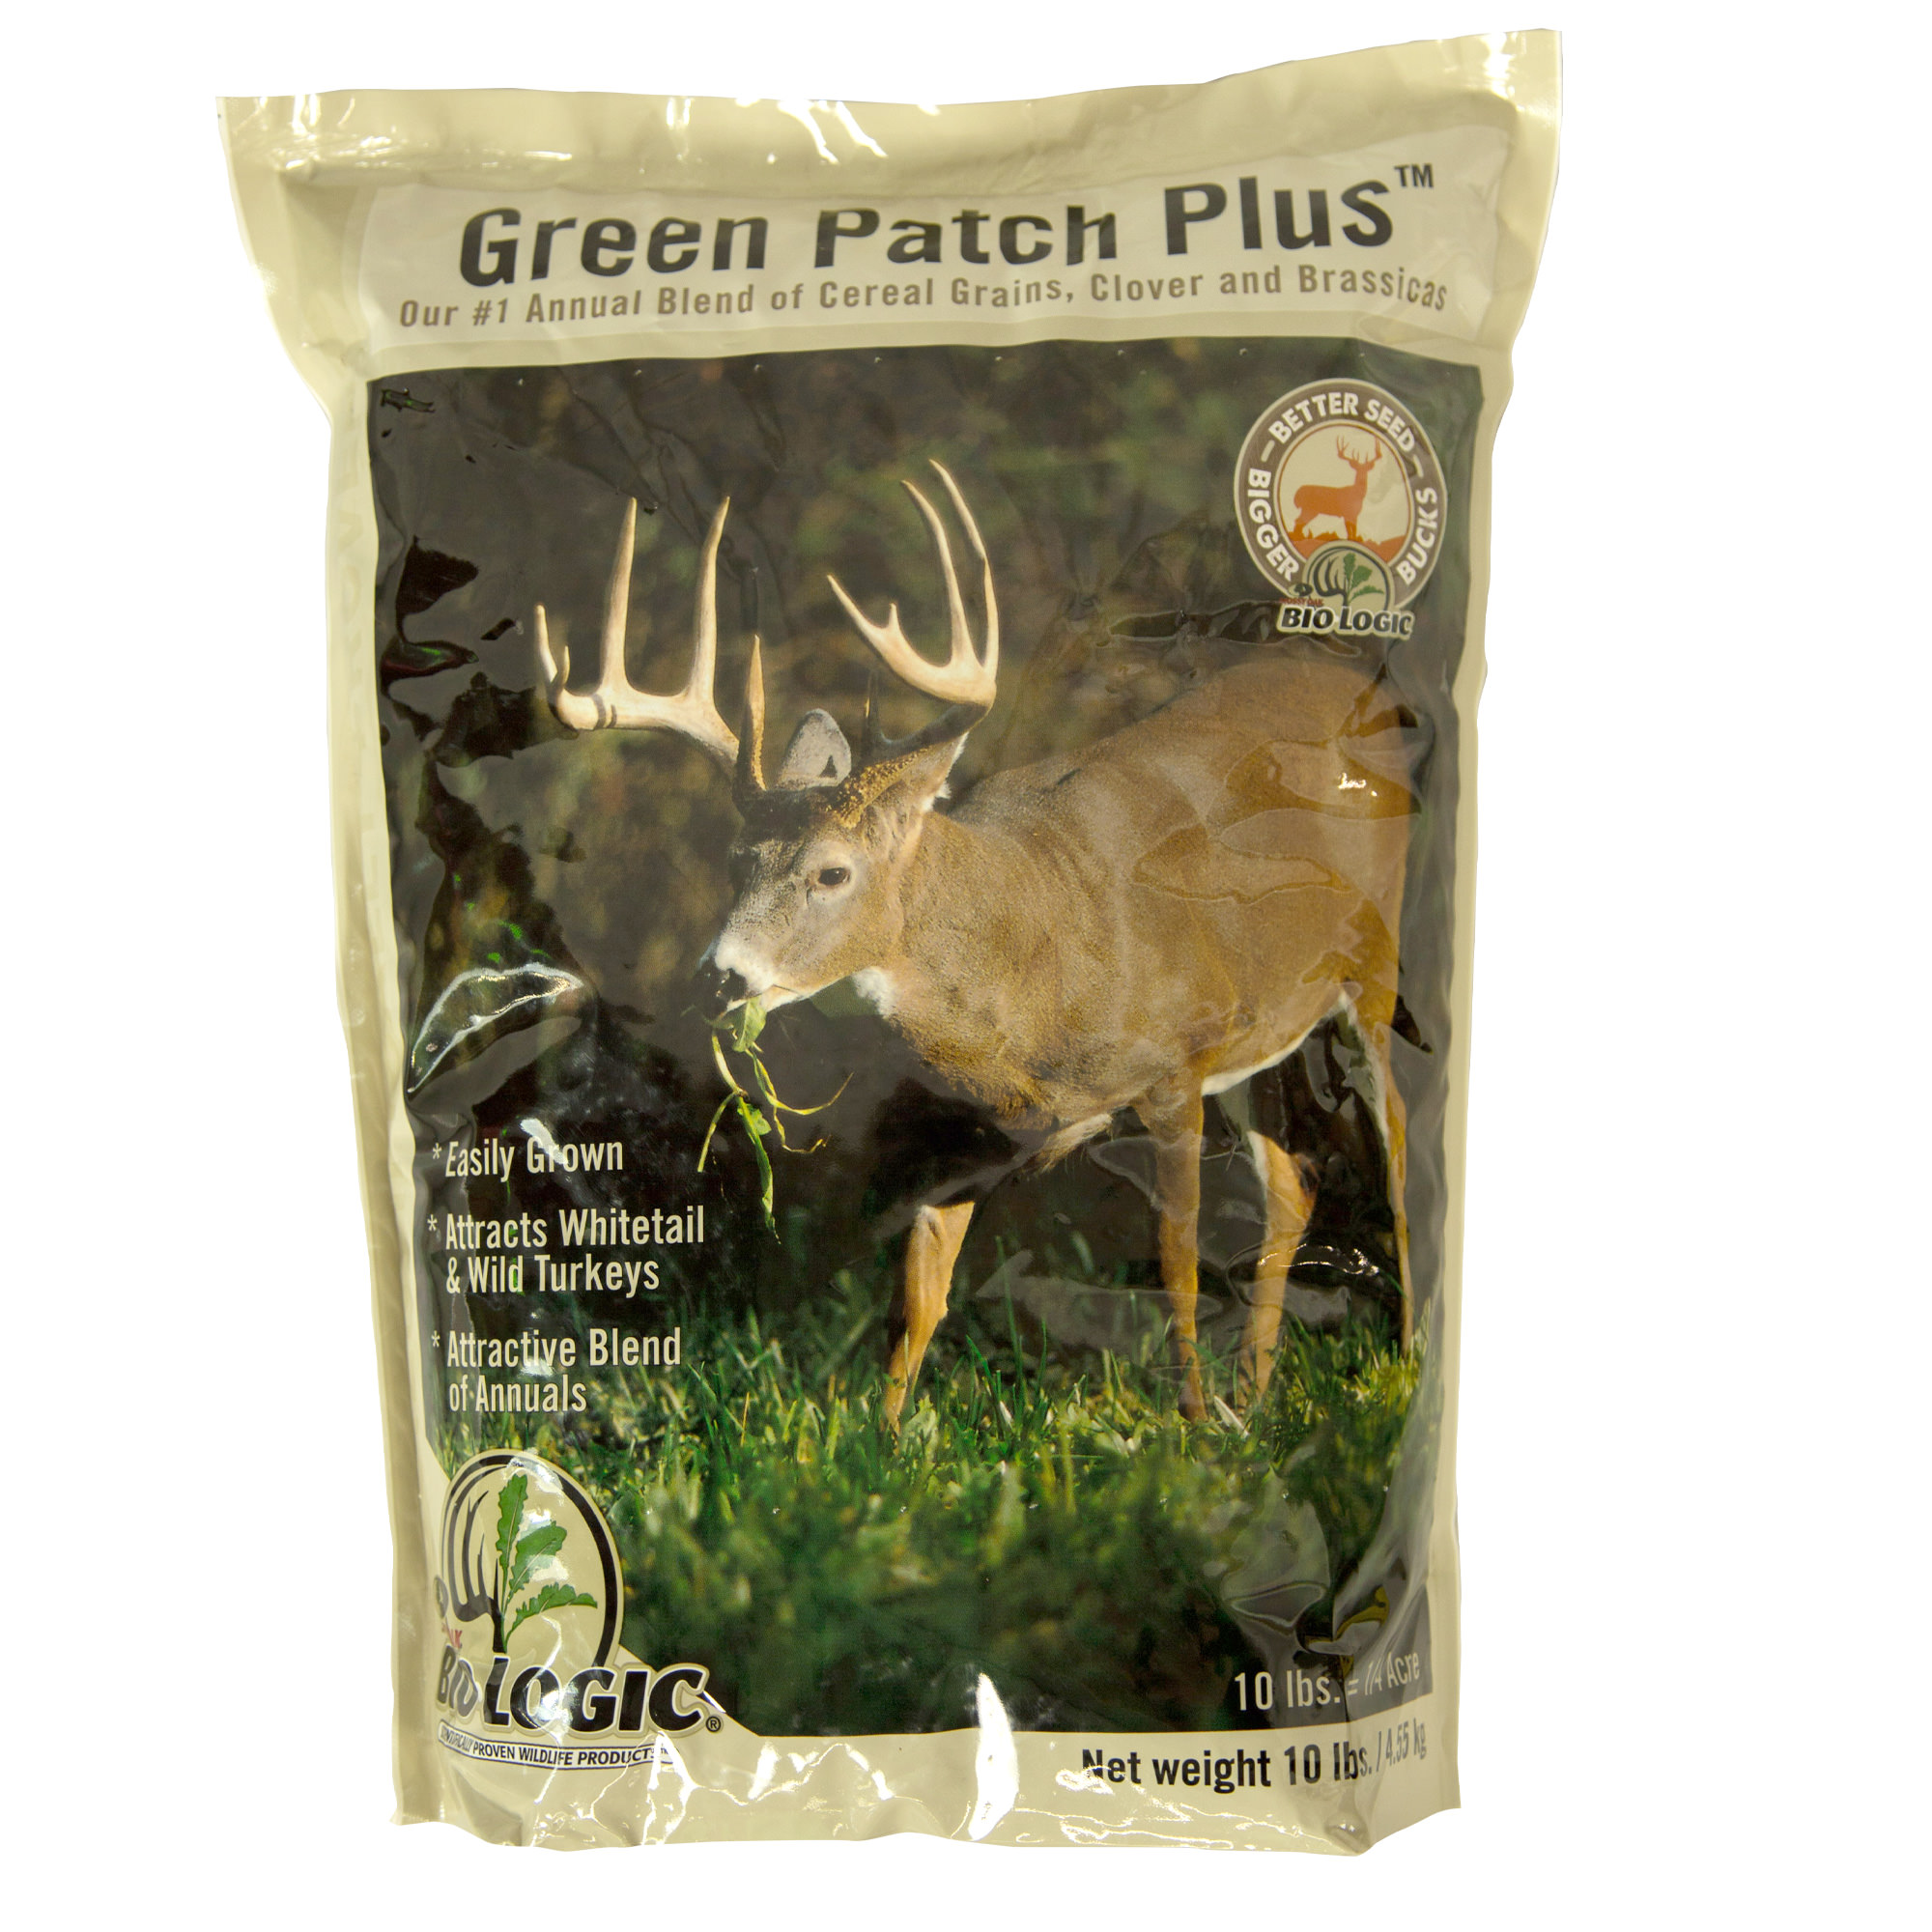 Mossy Oak BioLogic Green Patch Plus Food Plot Seed for Deer